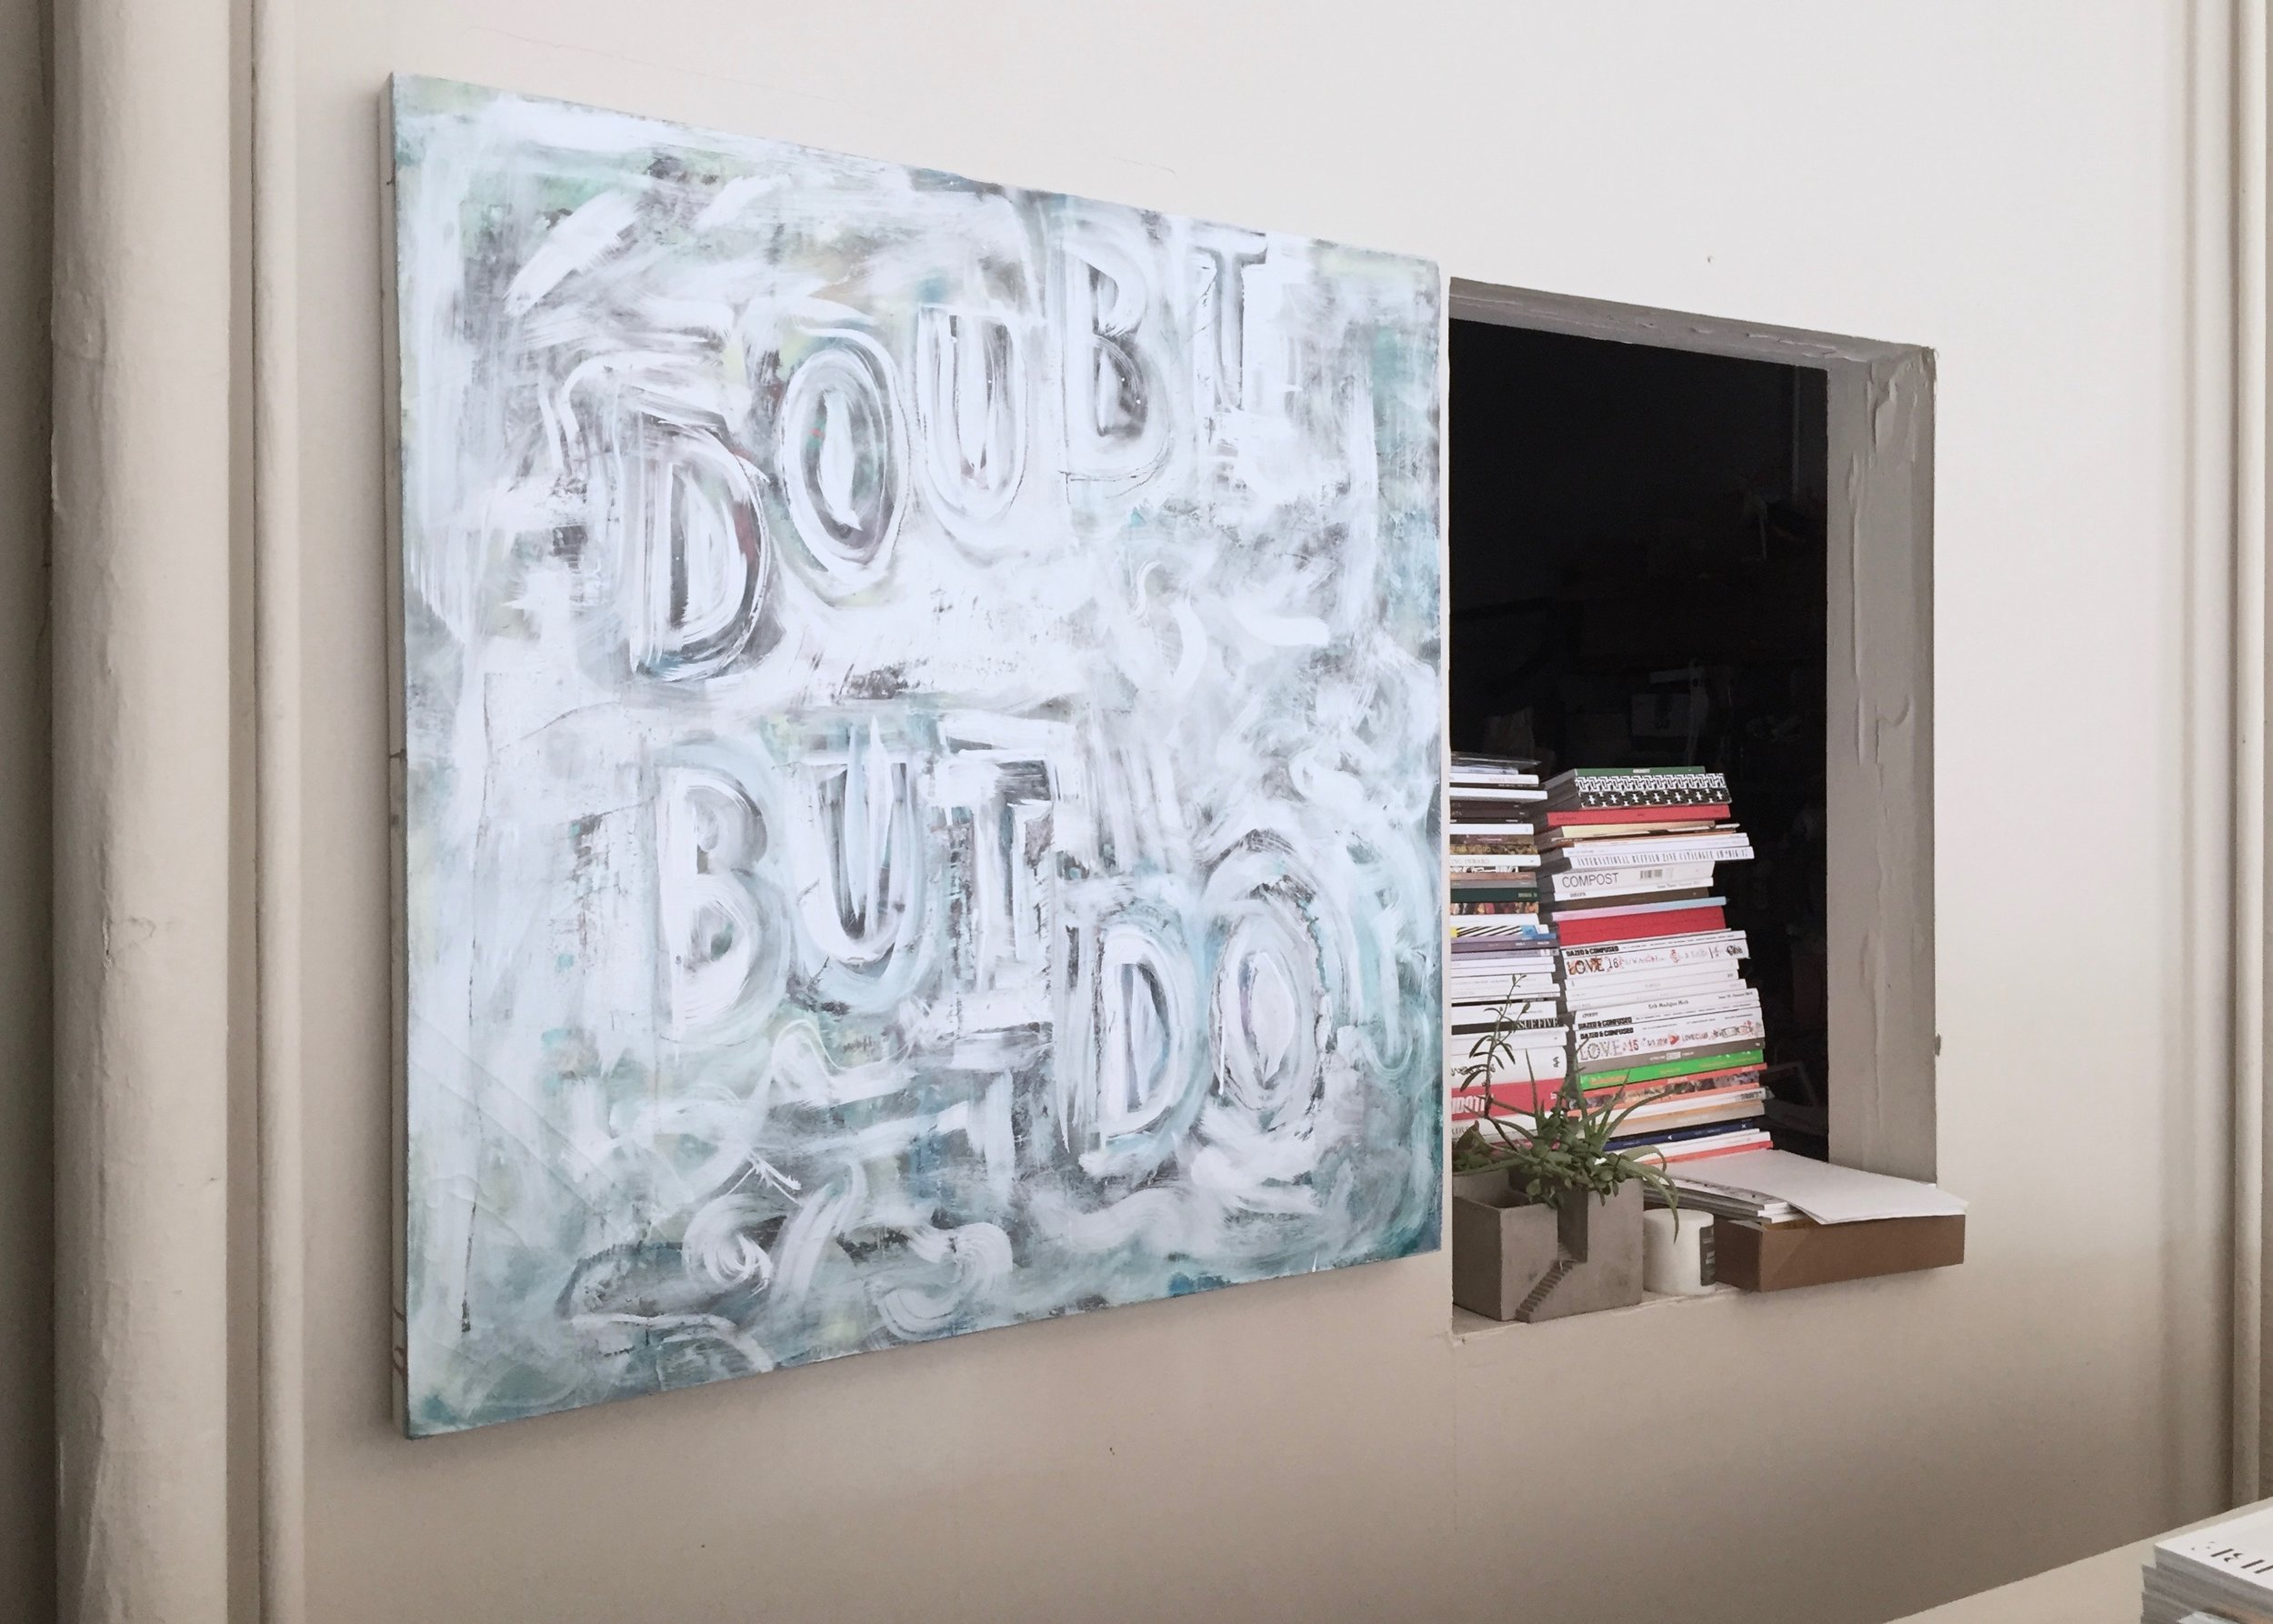 Doubt But Do , oil and acrylic on canvas, ca. 2014